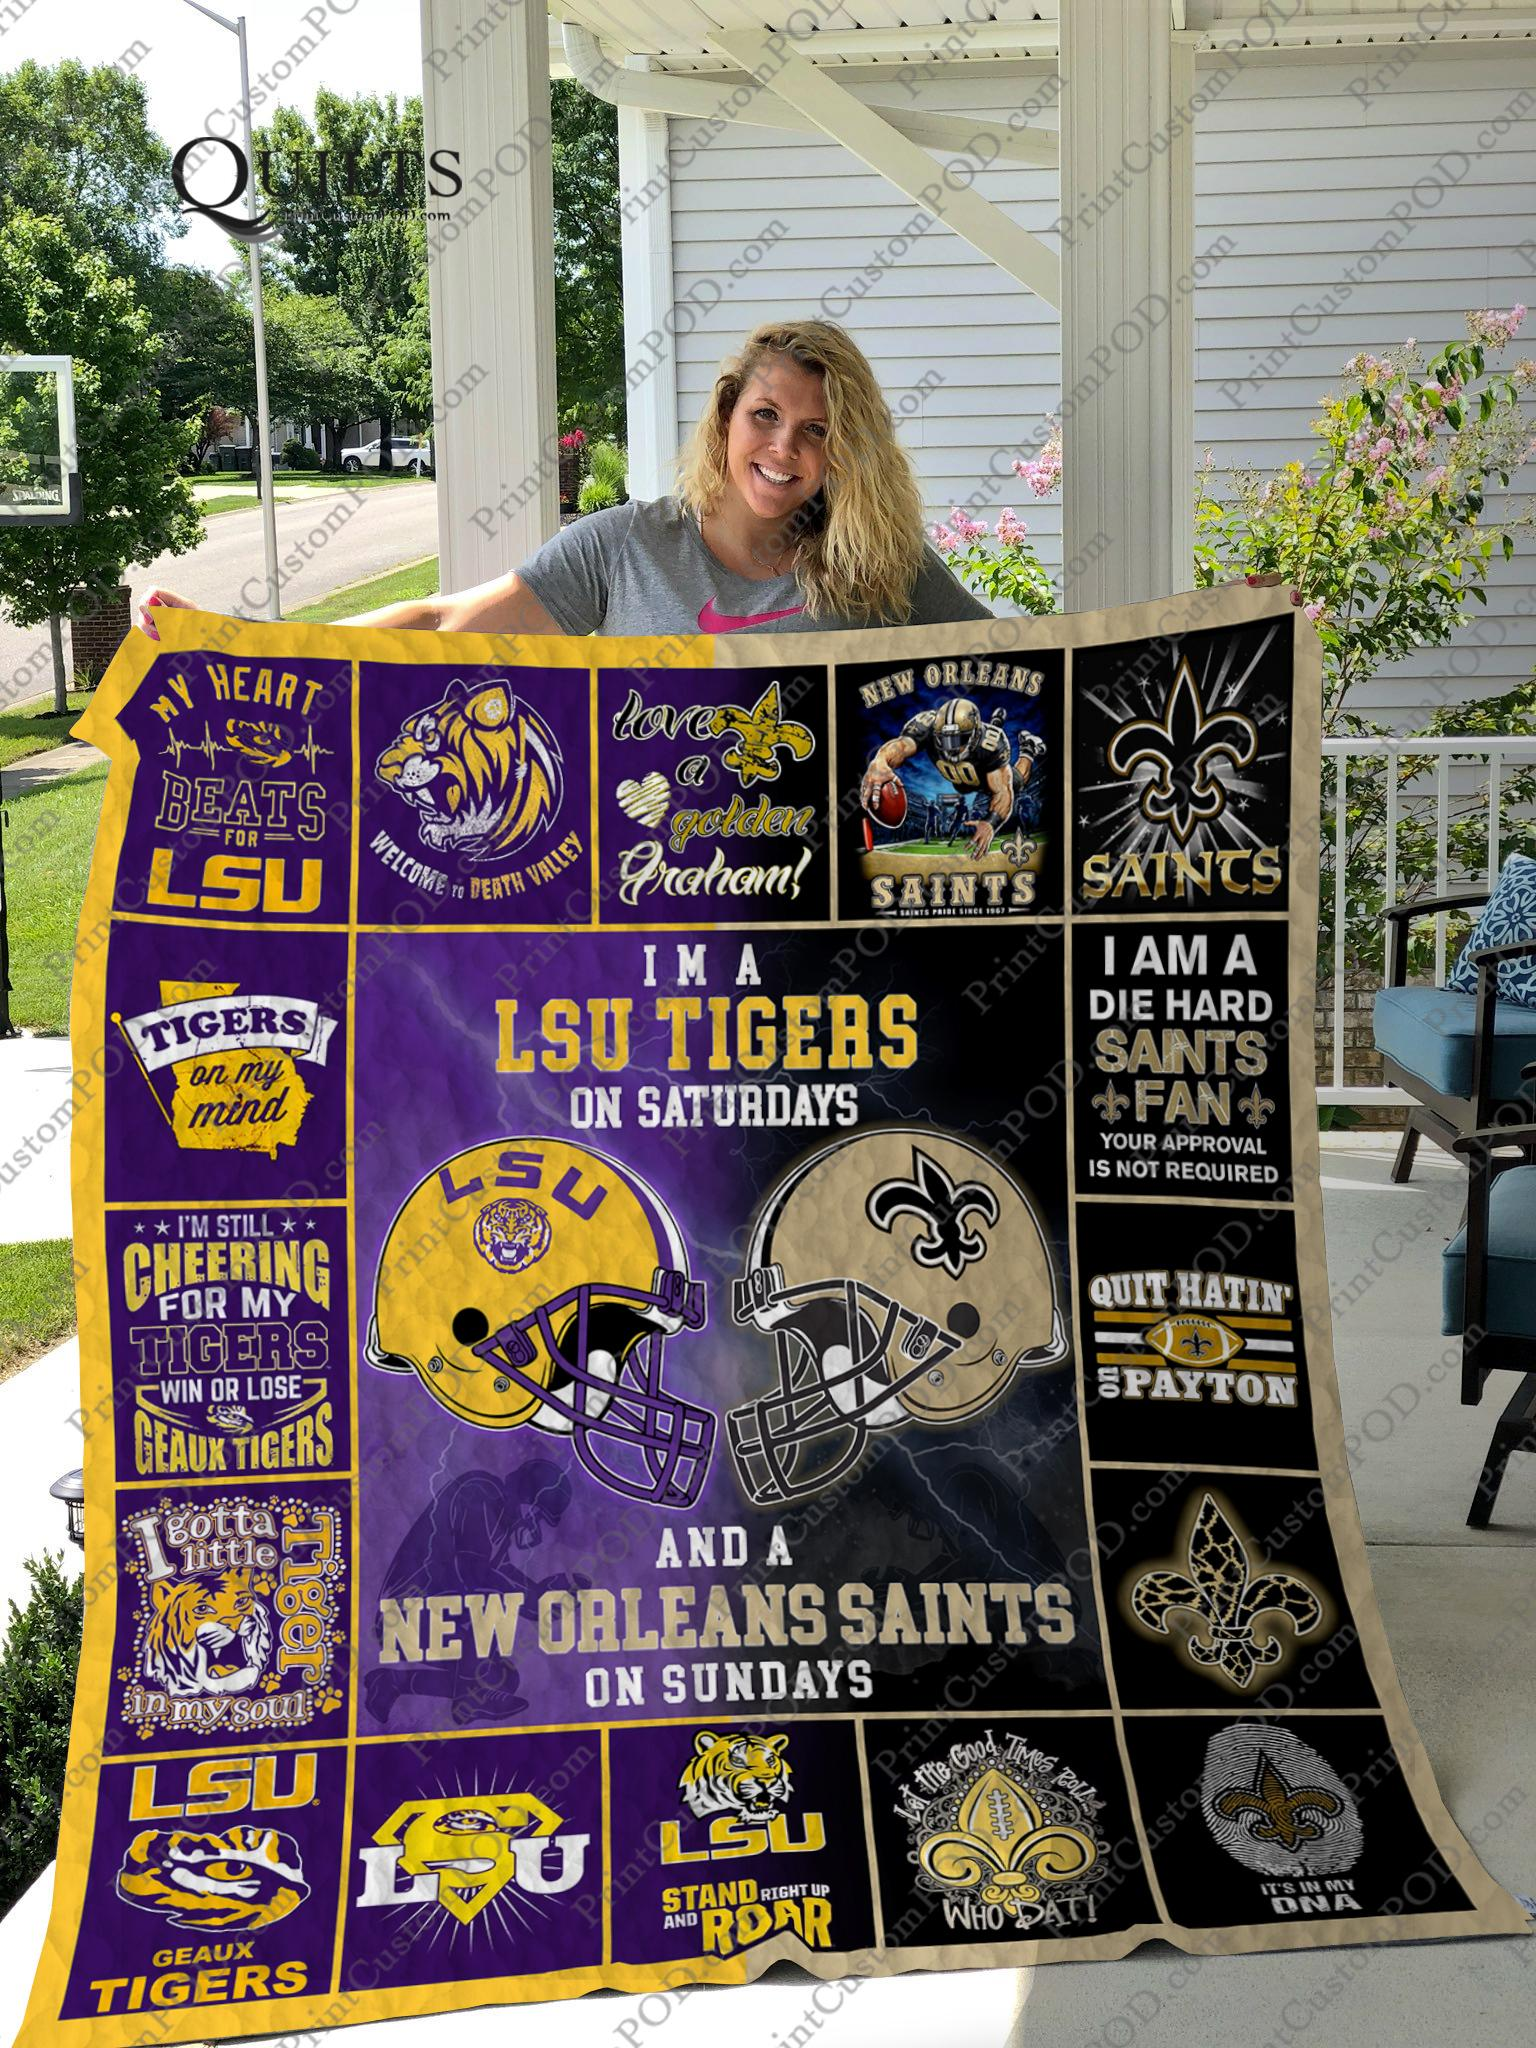 I'm a lsu tigers on saturdays and a new orleans saints on sundays blanket - 1